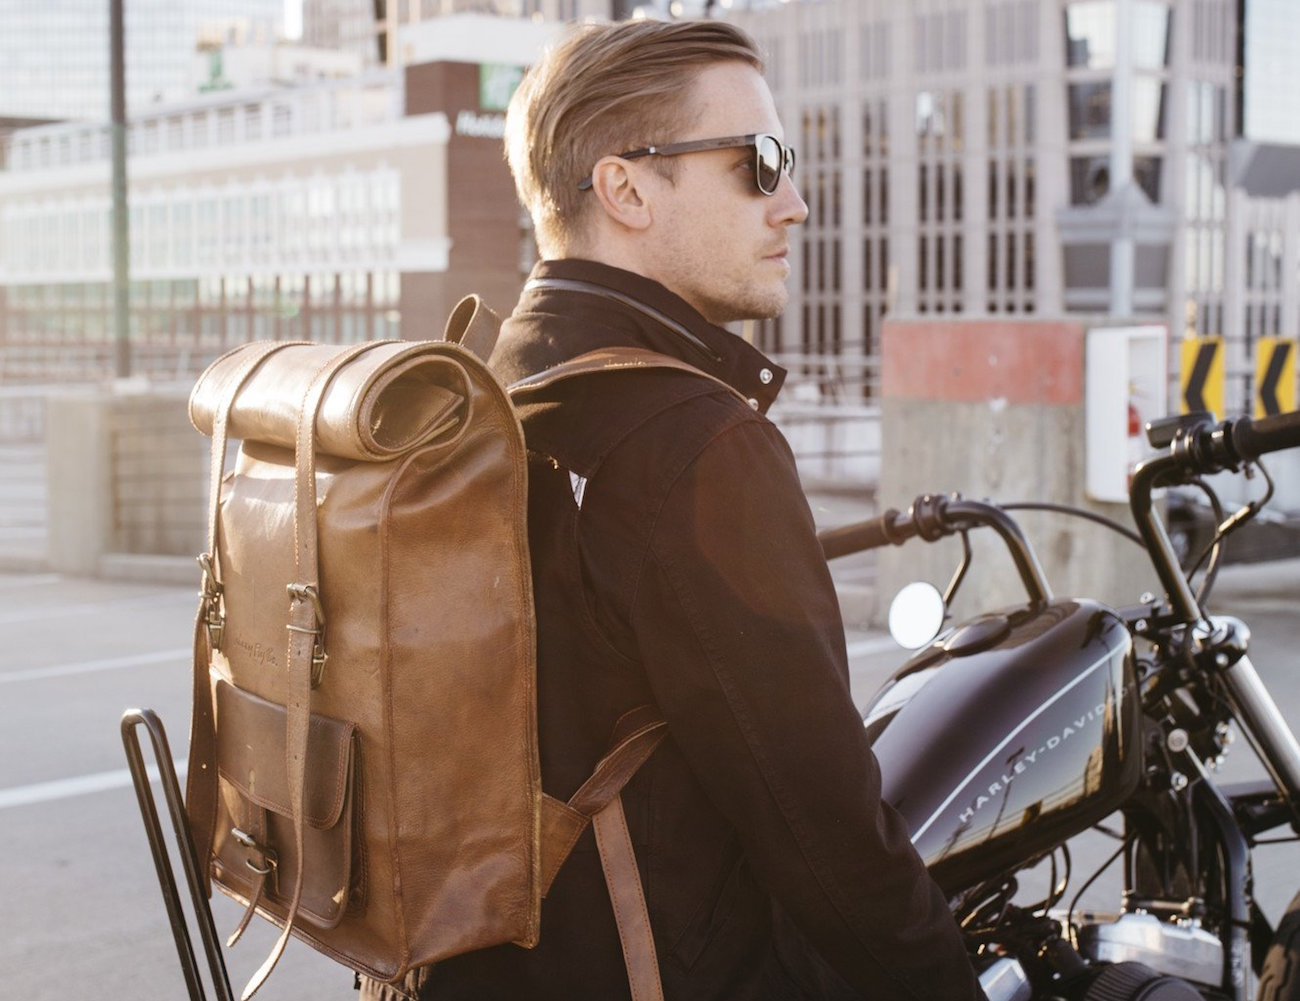 Leather Rolltop Backpack by Johnny Fly Co » Gadget Flow